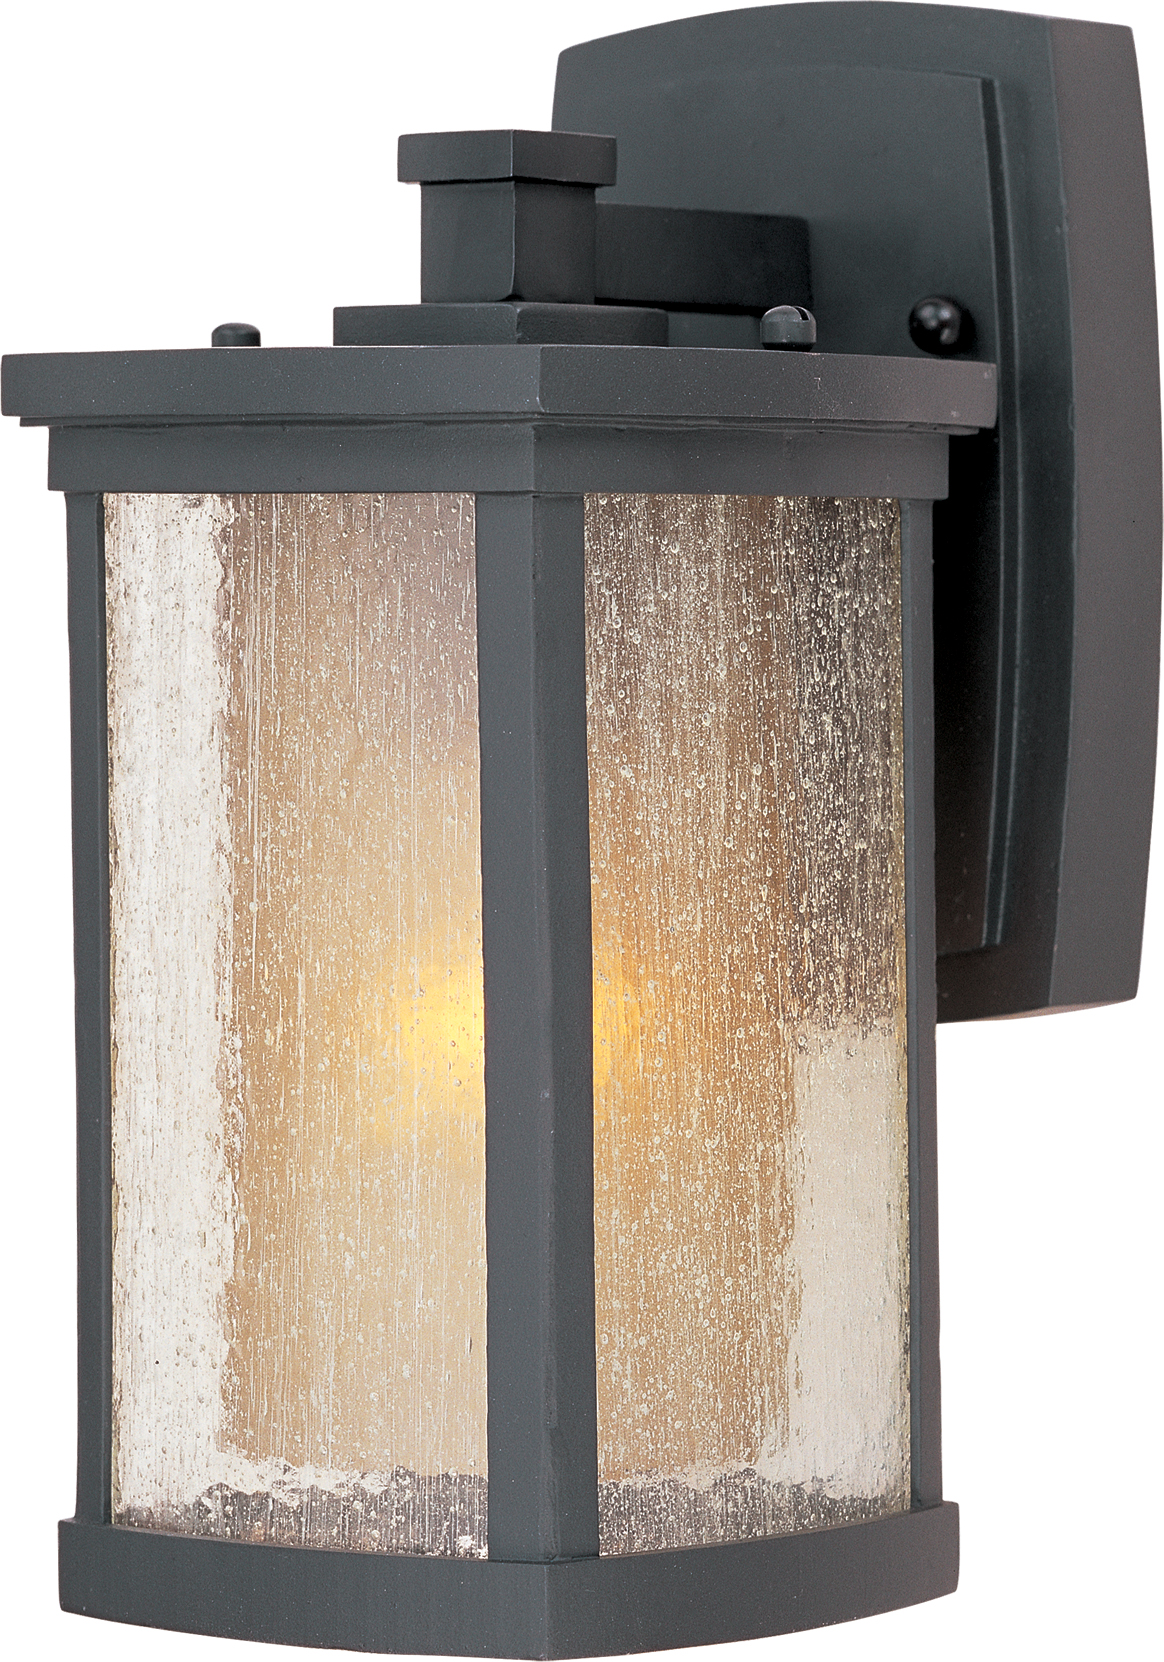 Bungalow 1 light wall lantern outdoor wall mount maxim lighting bungalow aloadofball Gallery